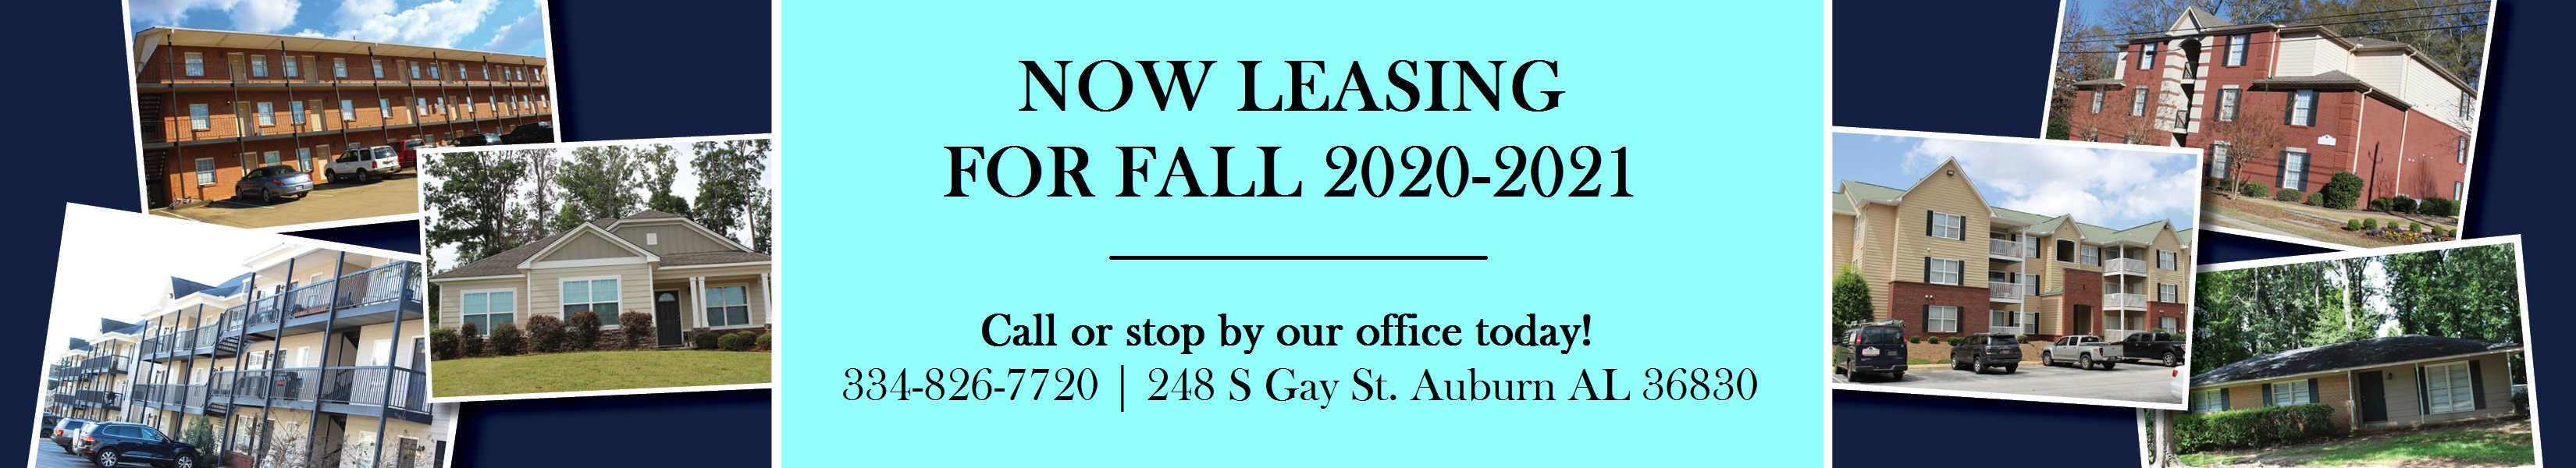 2020 Now Leasing Banner